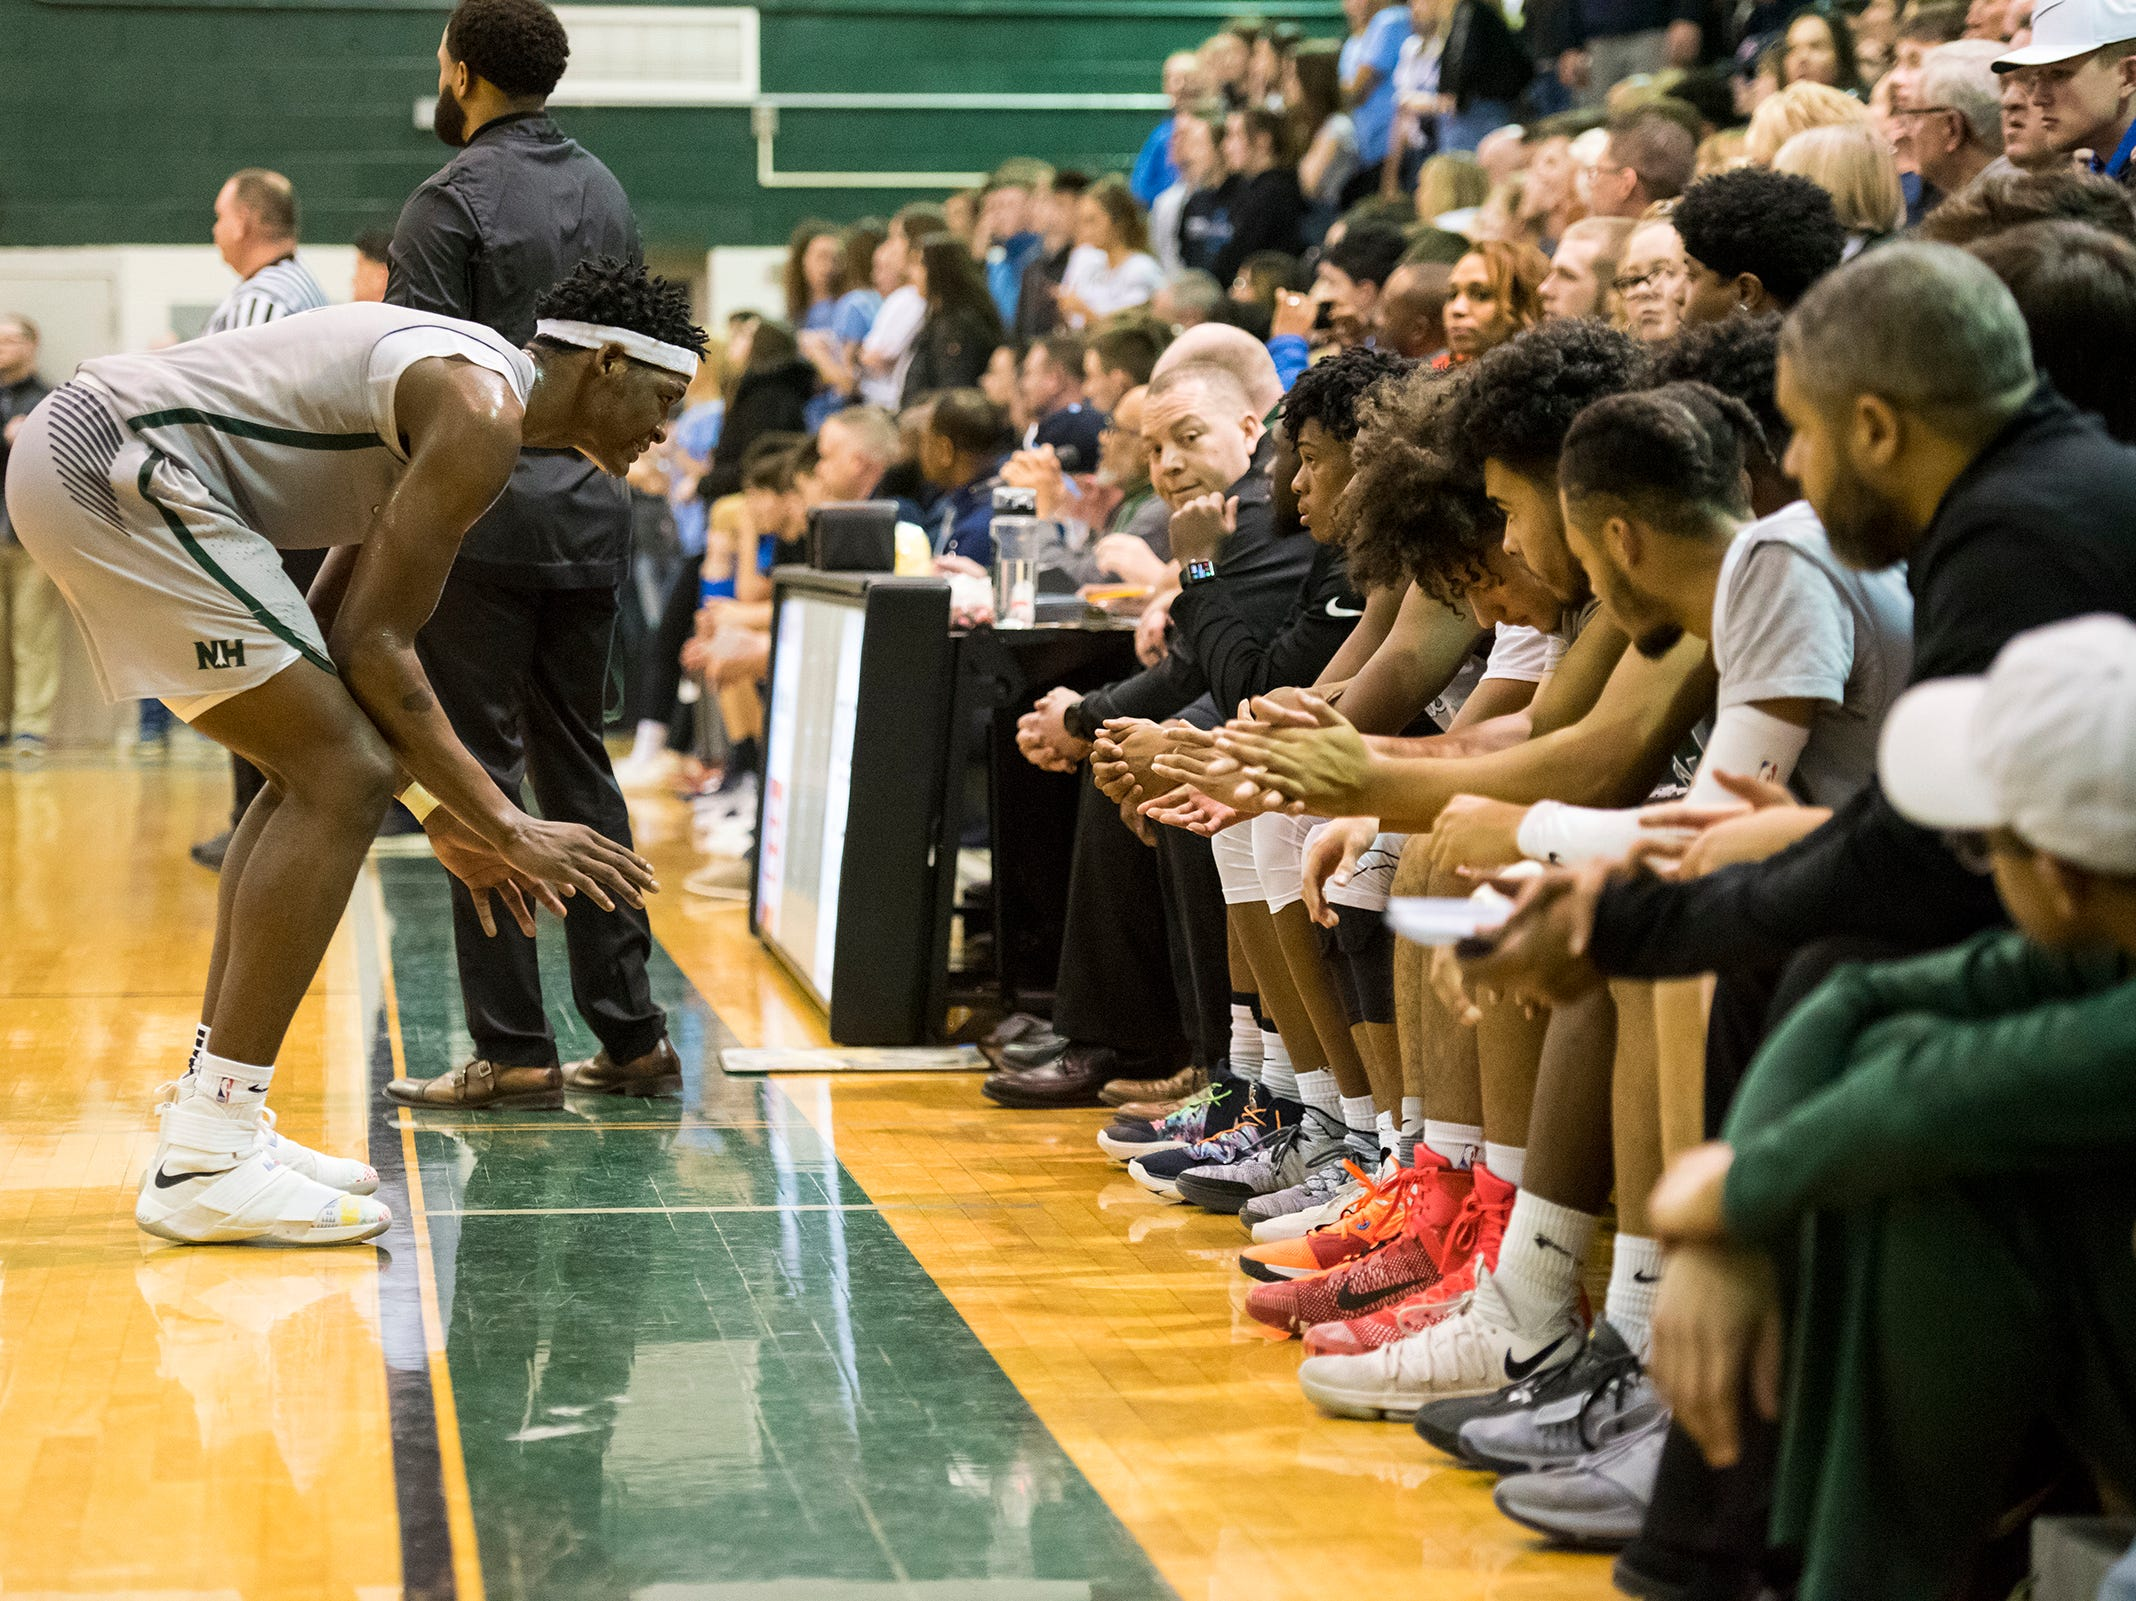 New Haven forward Romeo Weems (left) talks to the team during the MHSAA Division 2 Boys Basketball District Finals against Richmond High School Friday, March 1, 2019 at New Haven High School.